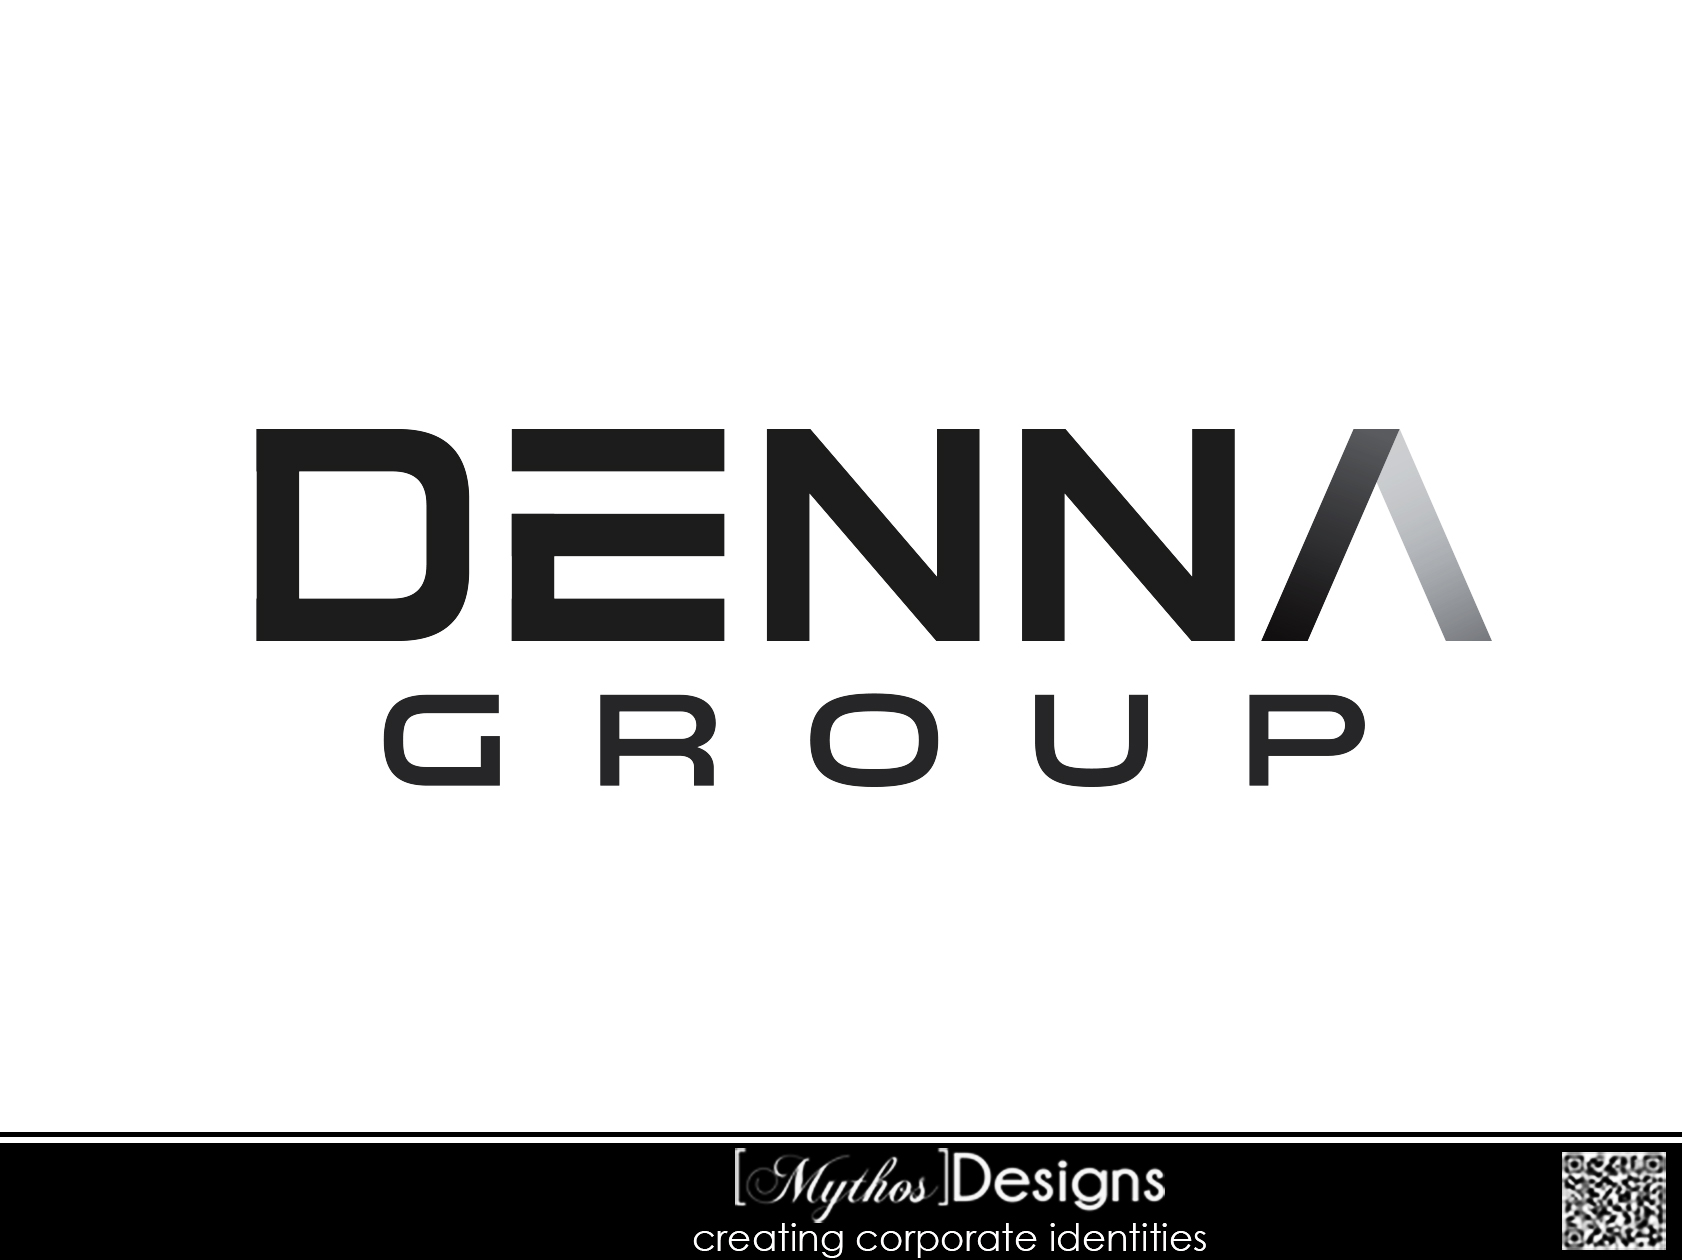 Logo Design by Mythos Designs - Entry No. 153 in the Logo Design Contest Denna Group Logo Design.